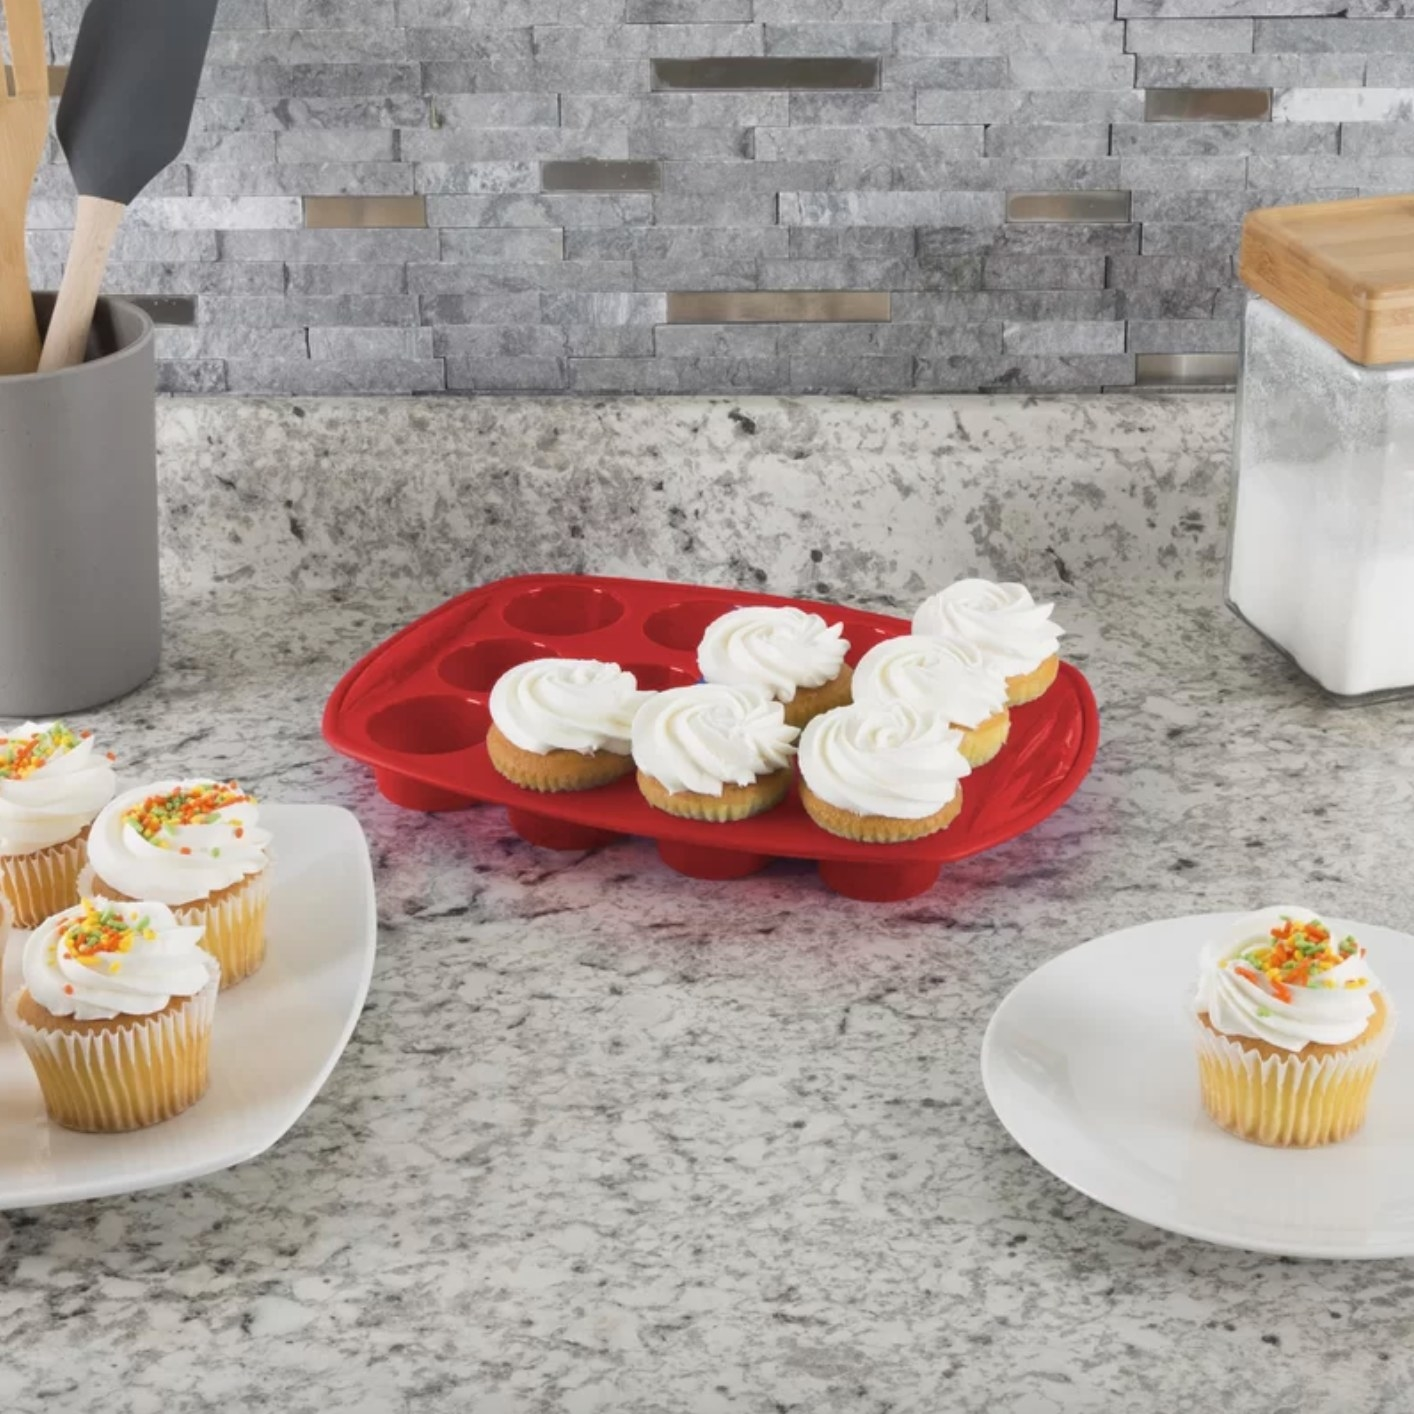 The nonstick bakeware cupcake tray in red